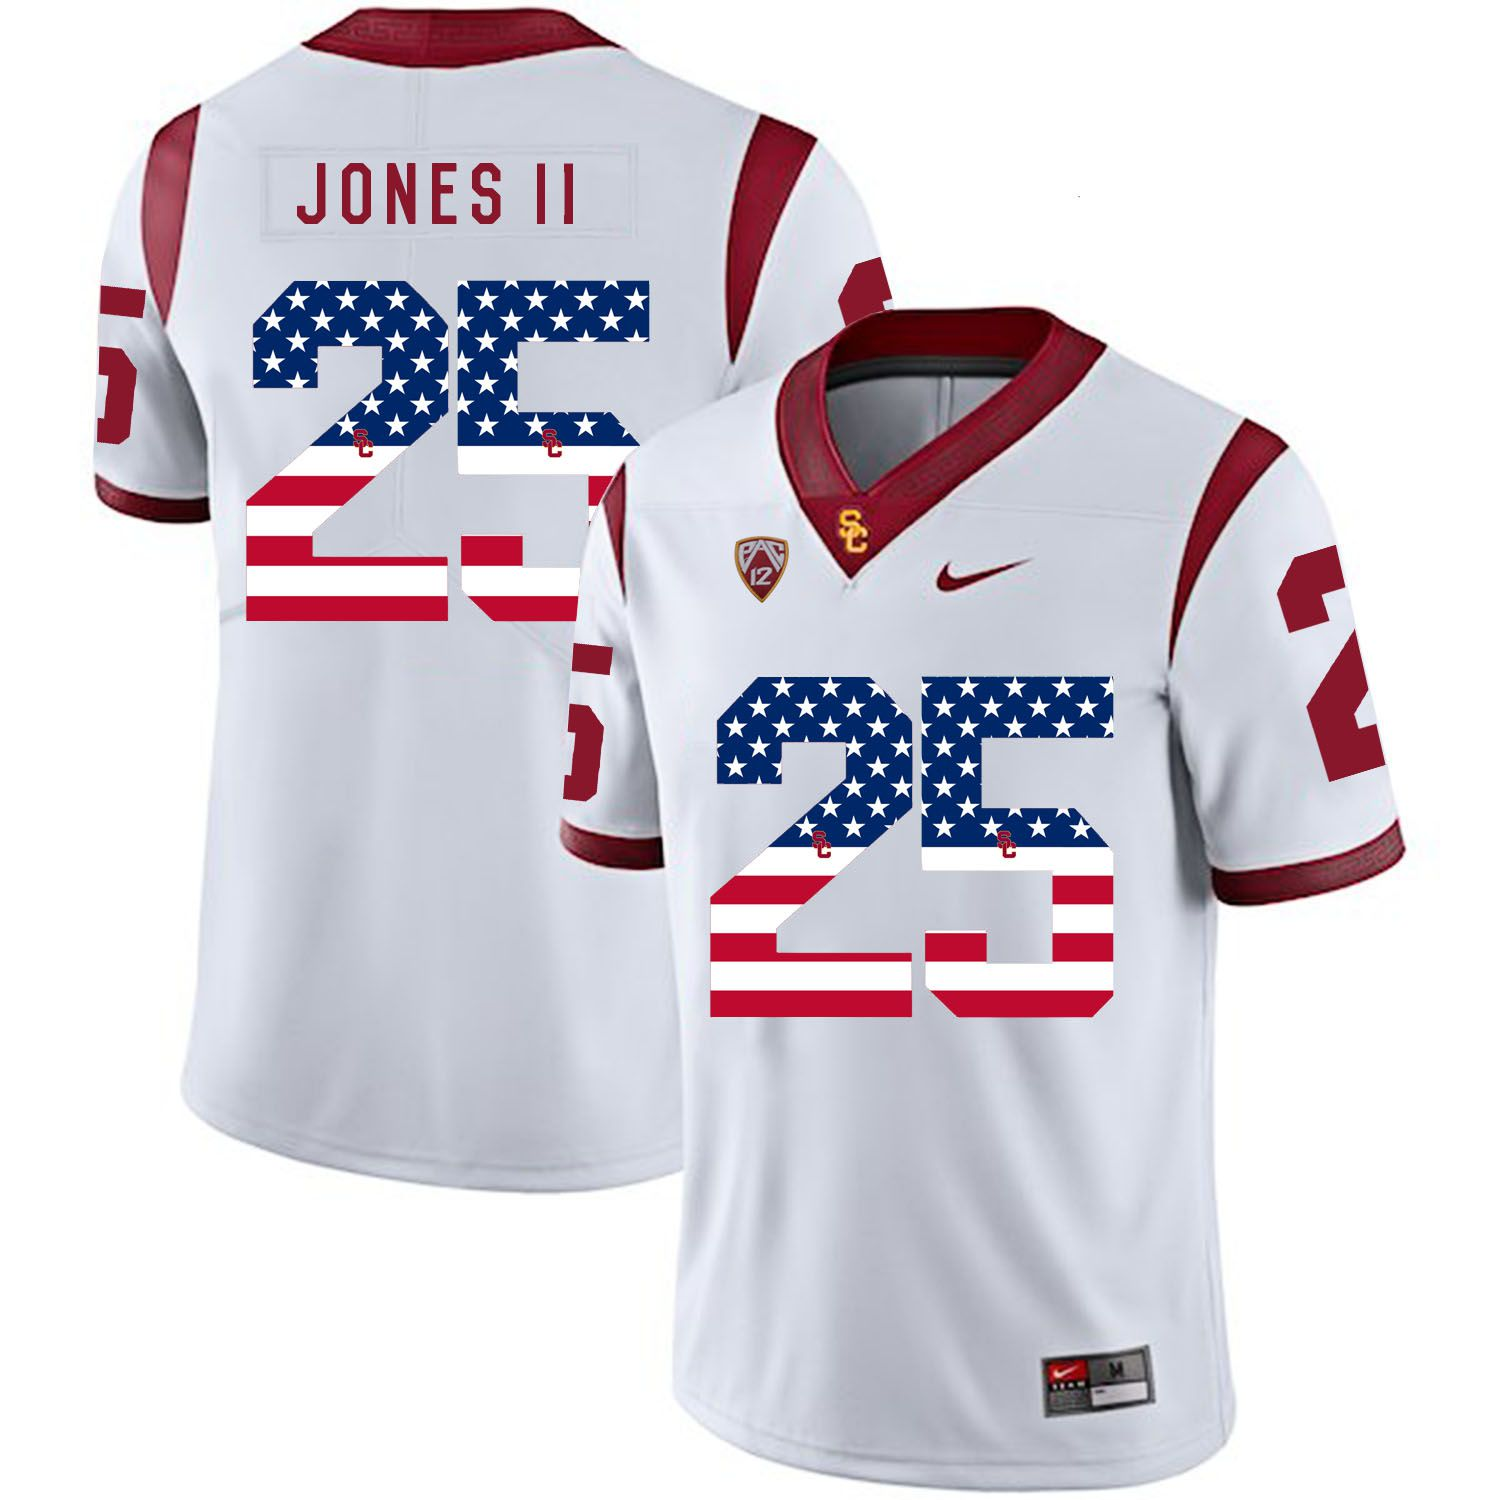 Men USC Trojans 25 Jones ii White Flag Customized NCAA Jerseys